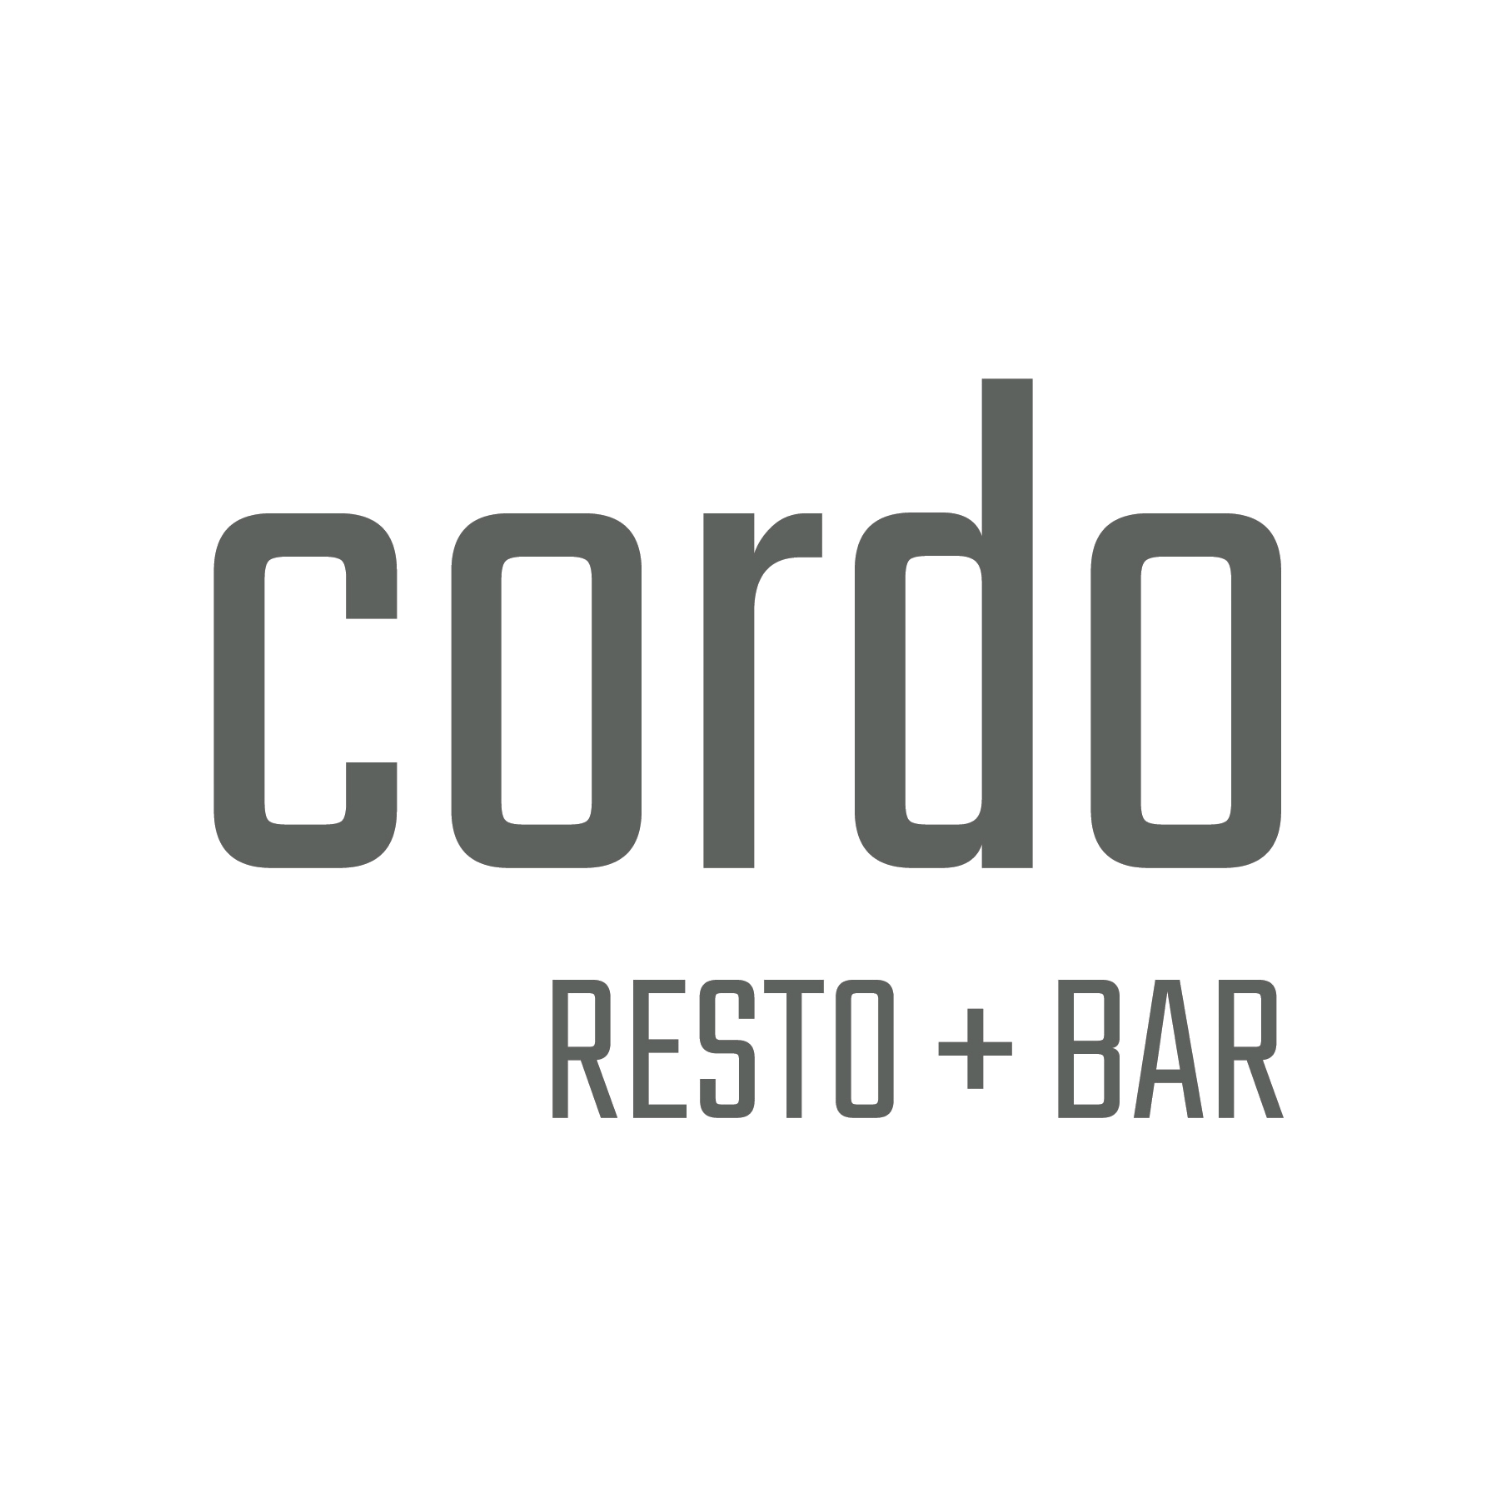 Cordo Rest +Bar Logo